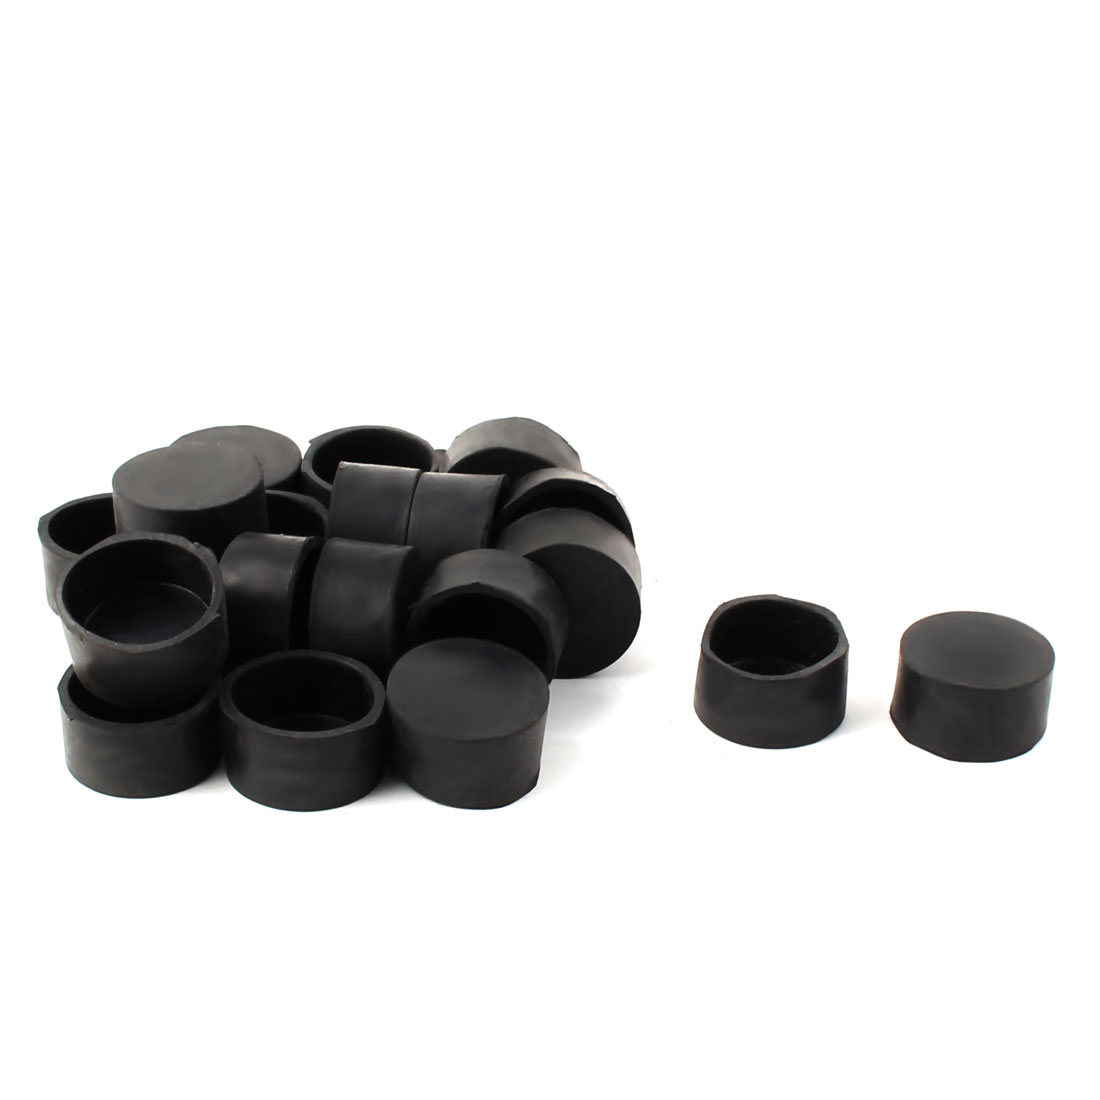 30mm Dia Round Tube Insert Table Desk Leg Foot Rubber Protector Caps Black 20pcs